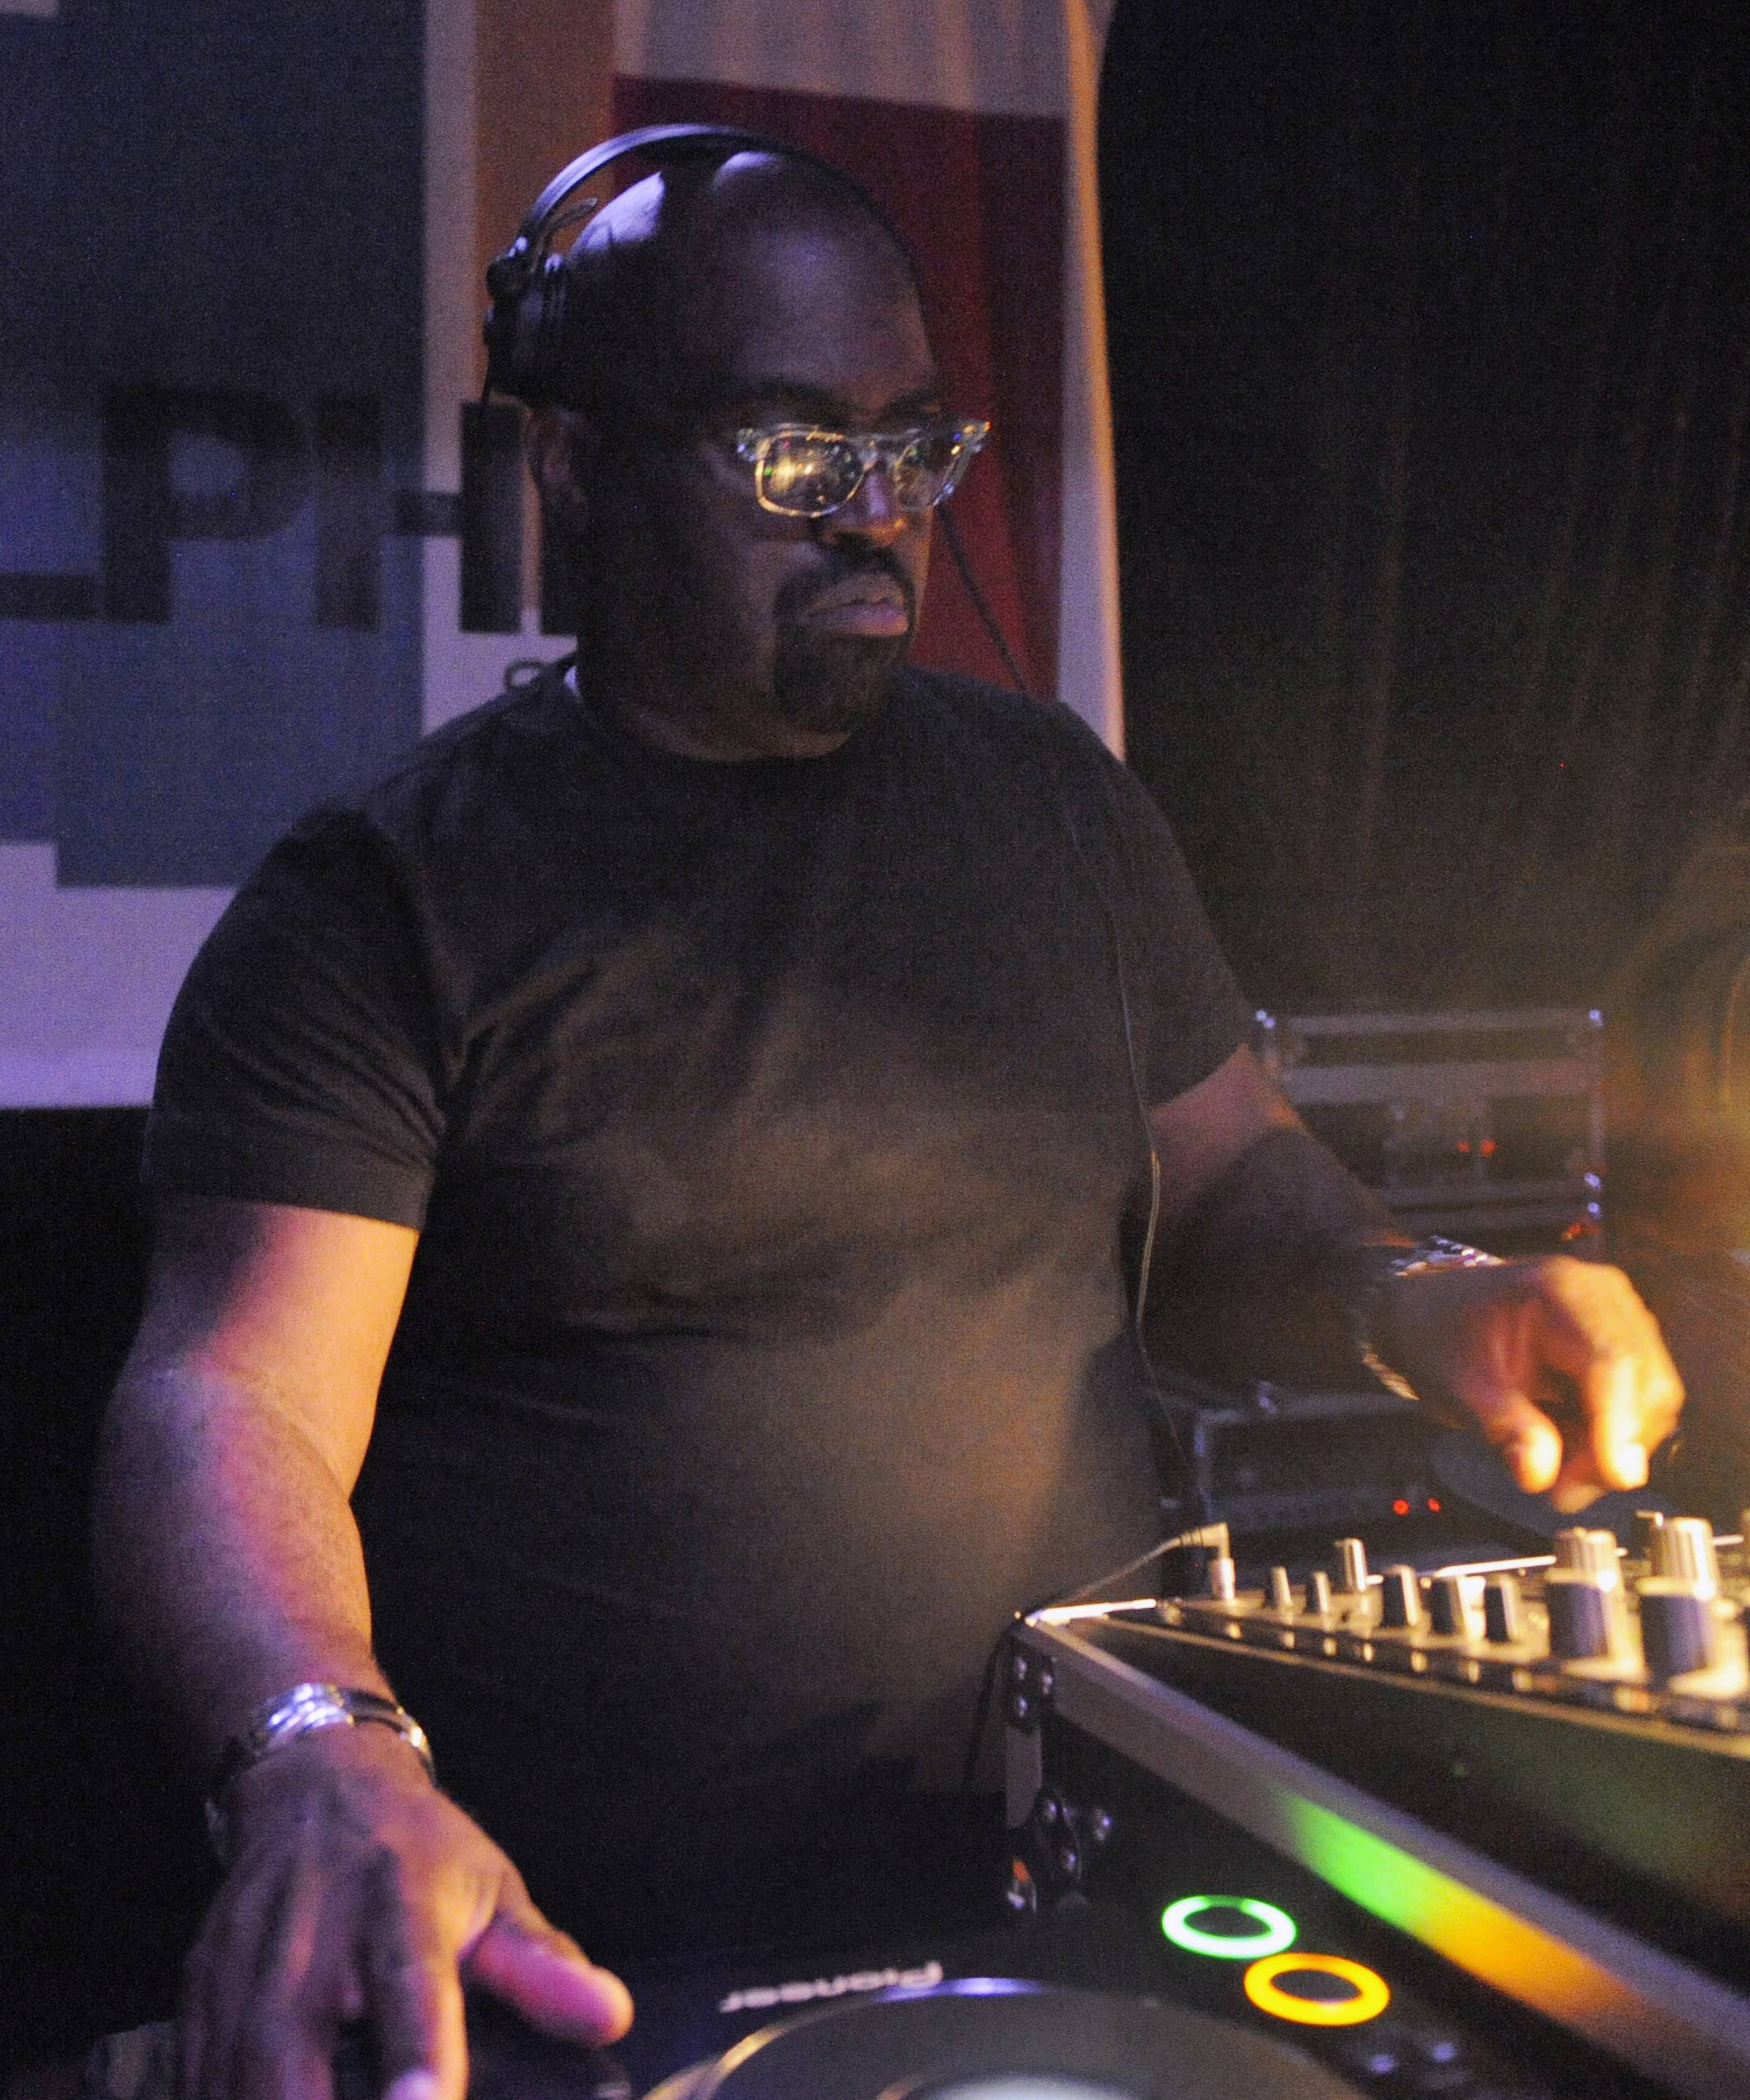 "This July 2, 2009 photo shows Chicago disc jockey Frankie Knuckles. Known as the ""Godfather of House Music, he was also a producer, having done work for artists including Michael Jackson and Diana Ross. The Cook County medical examiner said Knuckles died Monday, March 31, 2014, in Chicago. He was 59. (AP Photo/Sun-Times Media, Brian Jackson) MANDATORY CREDIT, MAGS OUT, NO SALES"